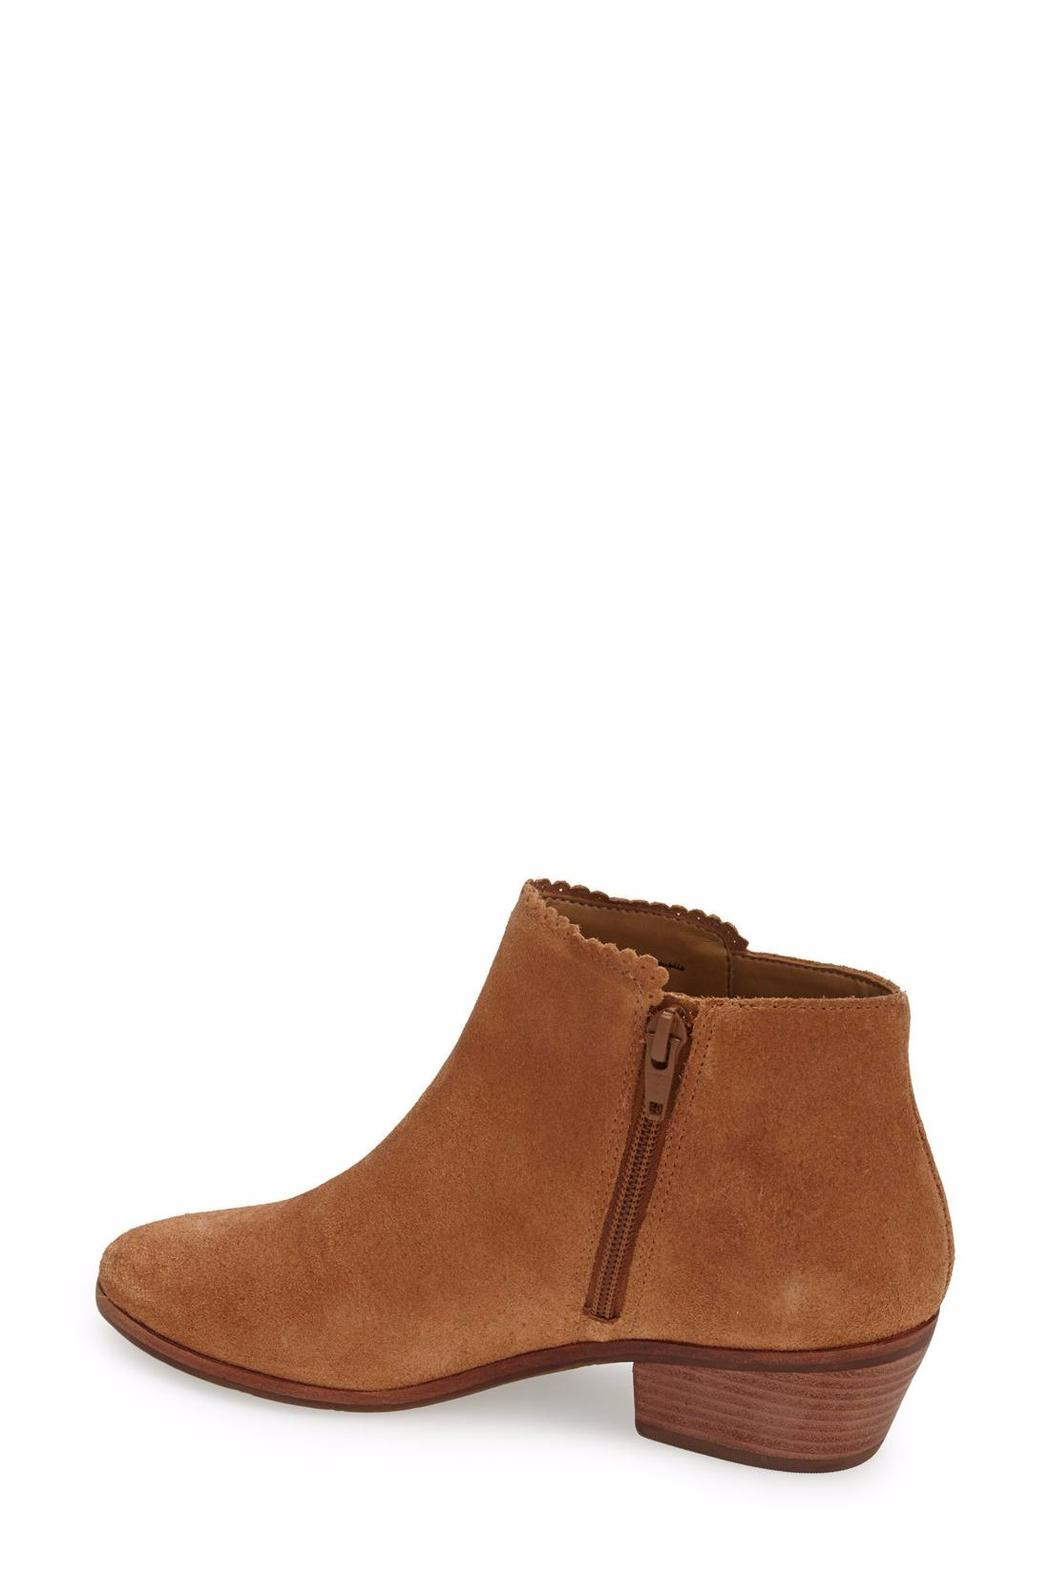 Jack Rogers Bailee Suede Bootie - Side Cropped Image